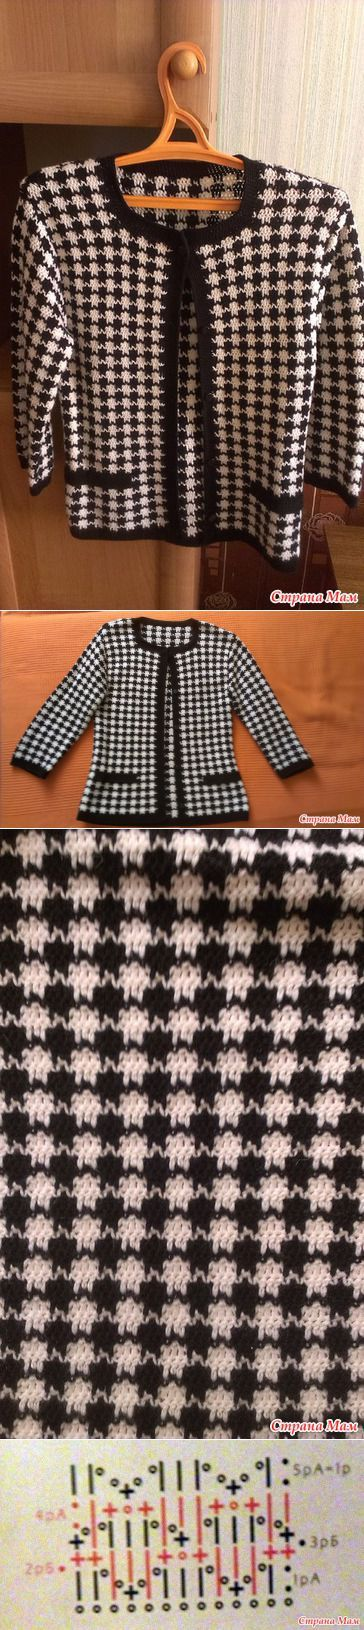 classic crochet motif - houndsthooth - diagram